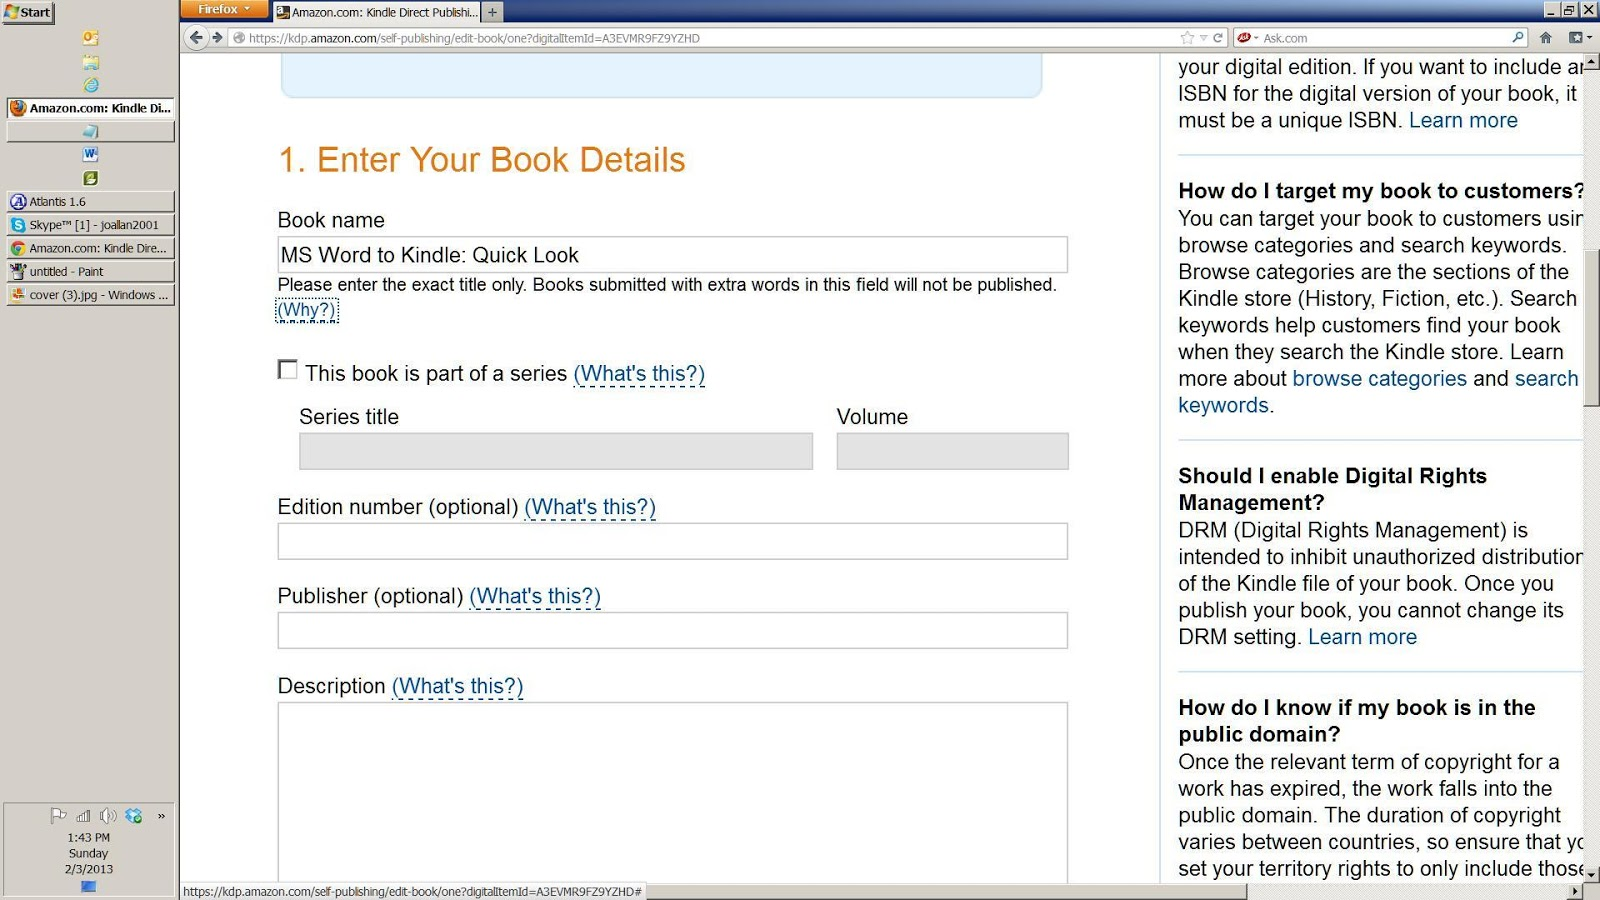 CJs Easy As Pie Kindle Tutorials: MS Word to Kindle Quick Look